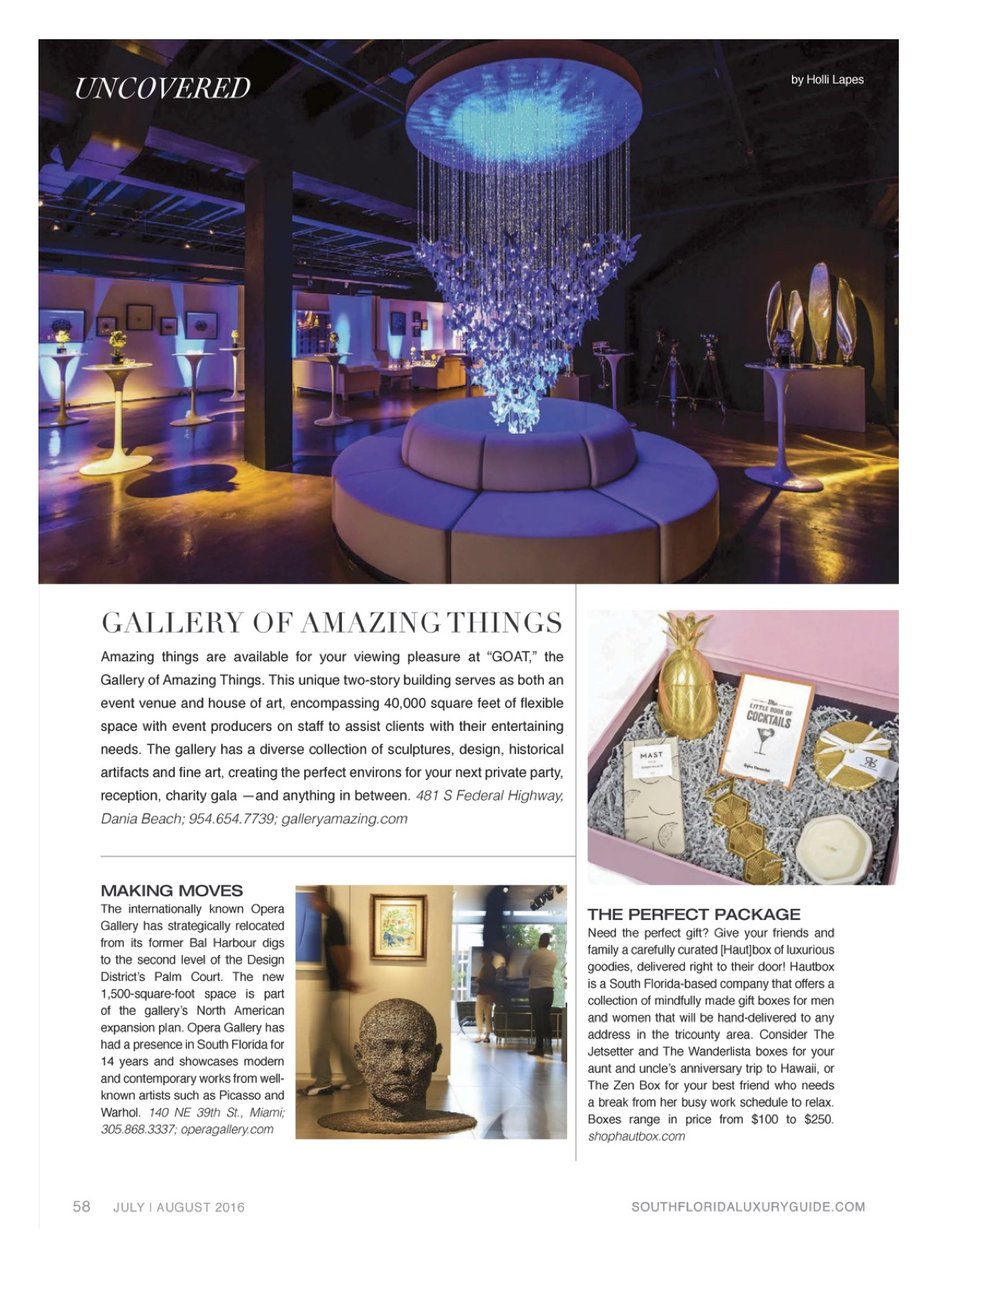 Hautbox- South Florida Luxury Guide July_August 2016.jpg